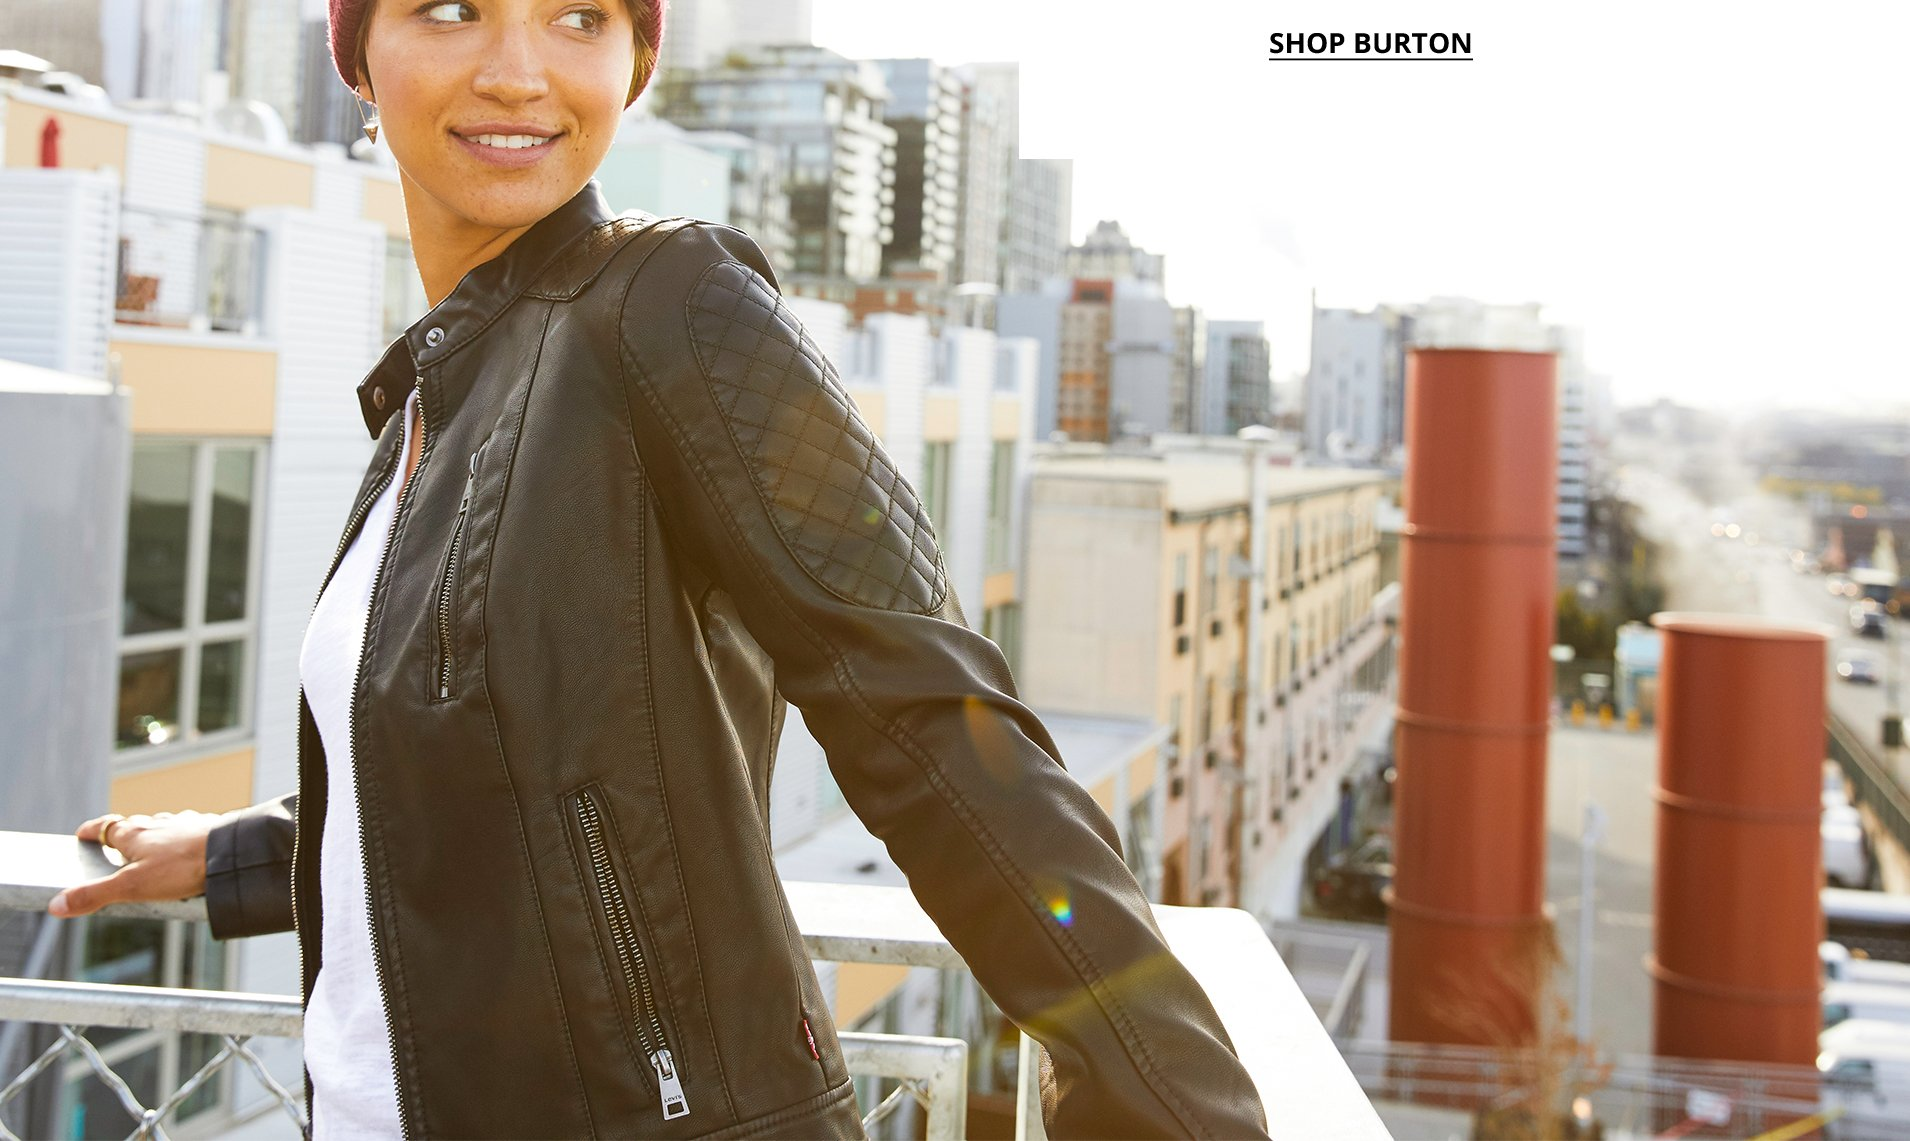 Image of a woman wearing a red beanie and a black leather jacket in front of a city scape.